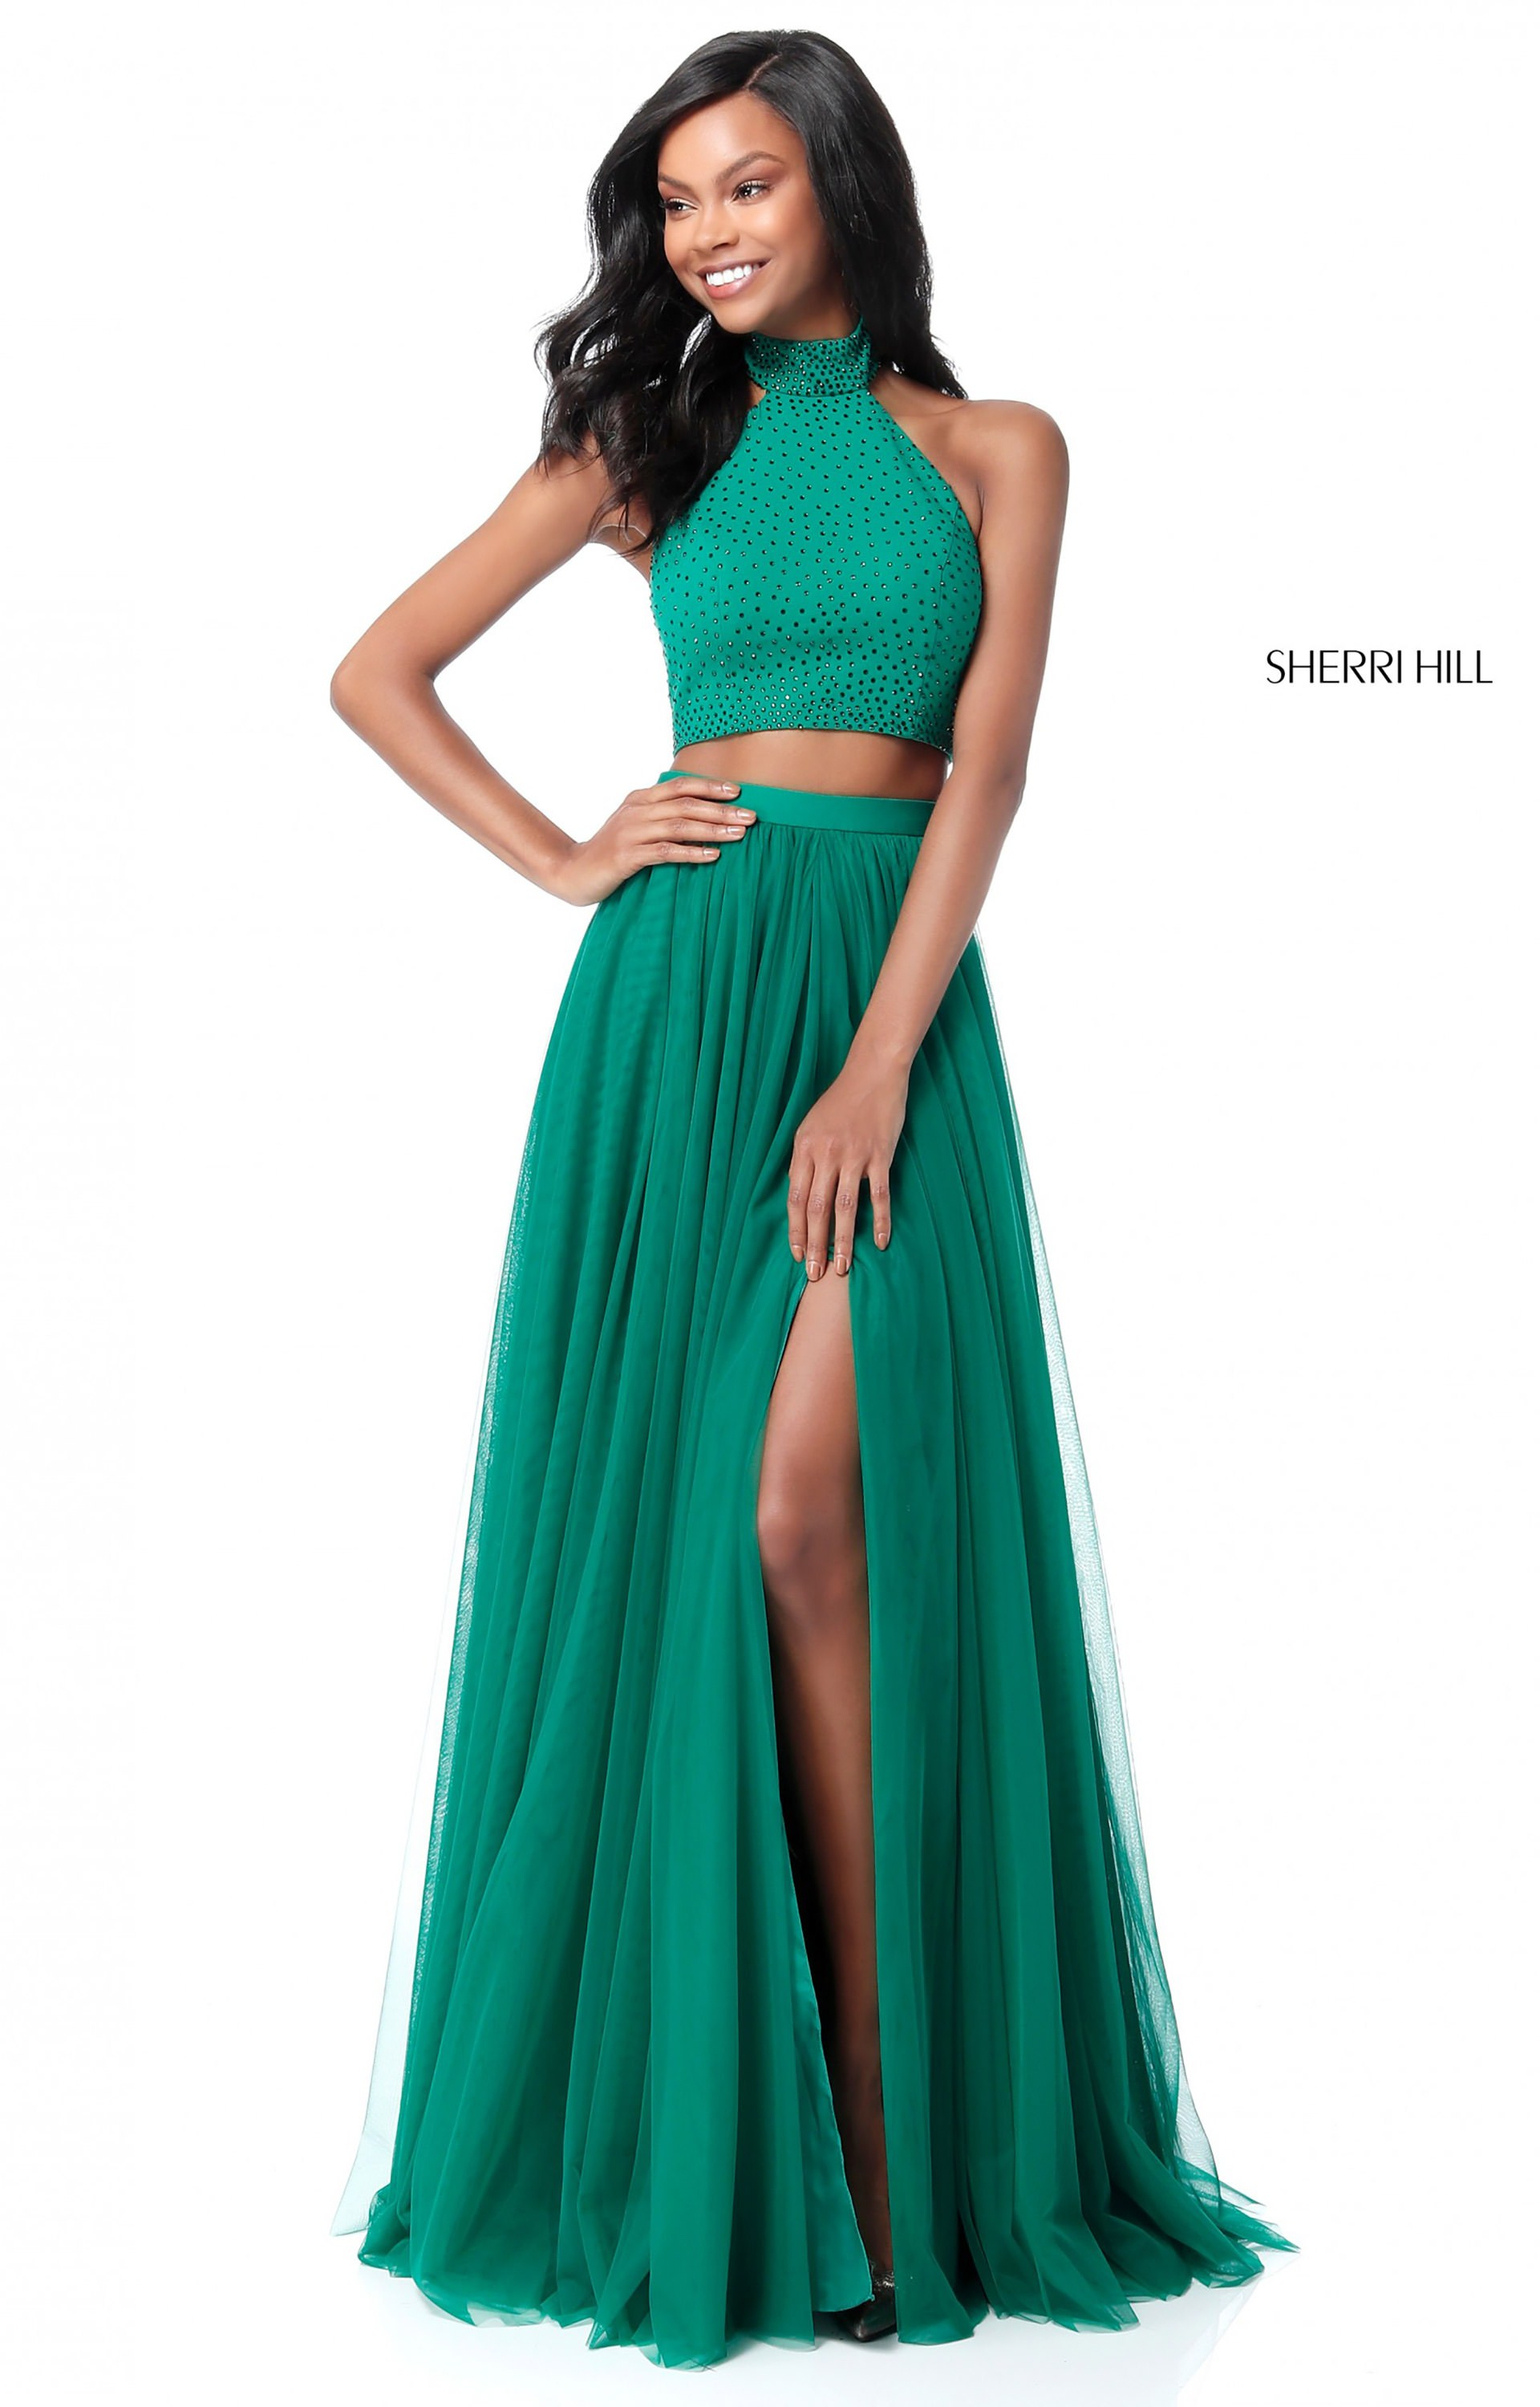 Sherri Hill 51721 - Long A-Line Tulle 2 Piece Prom Dress